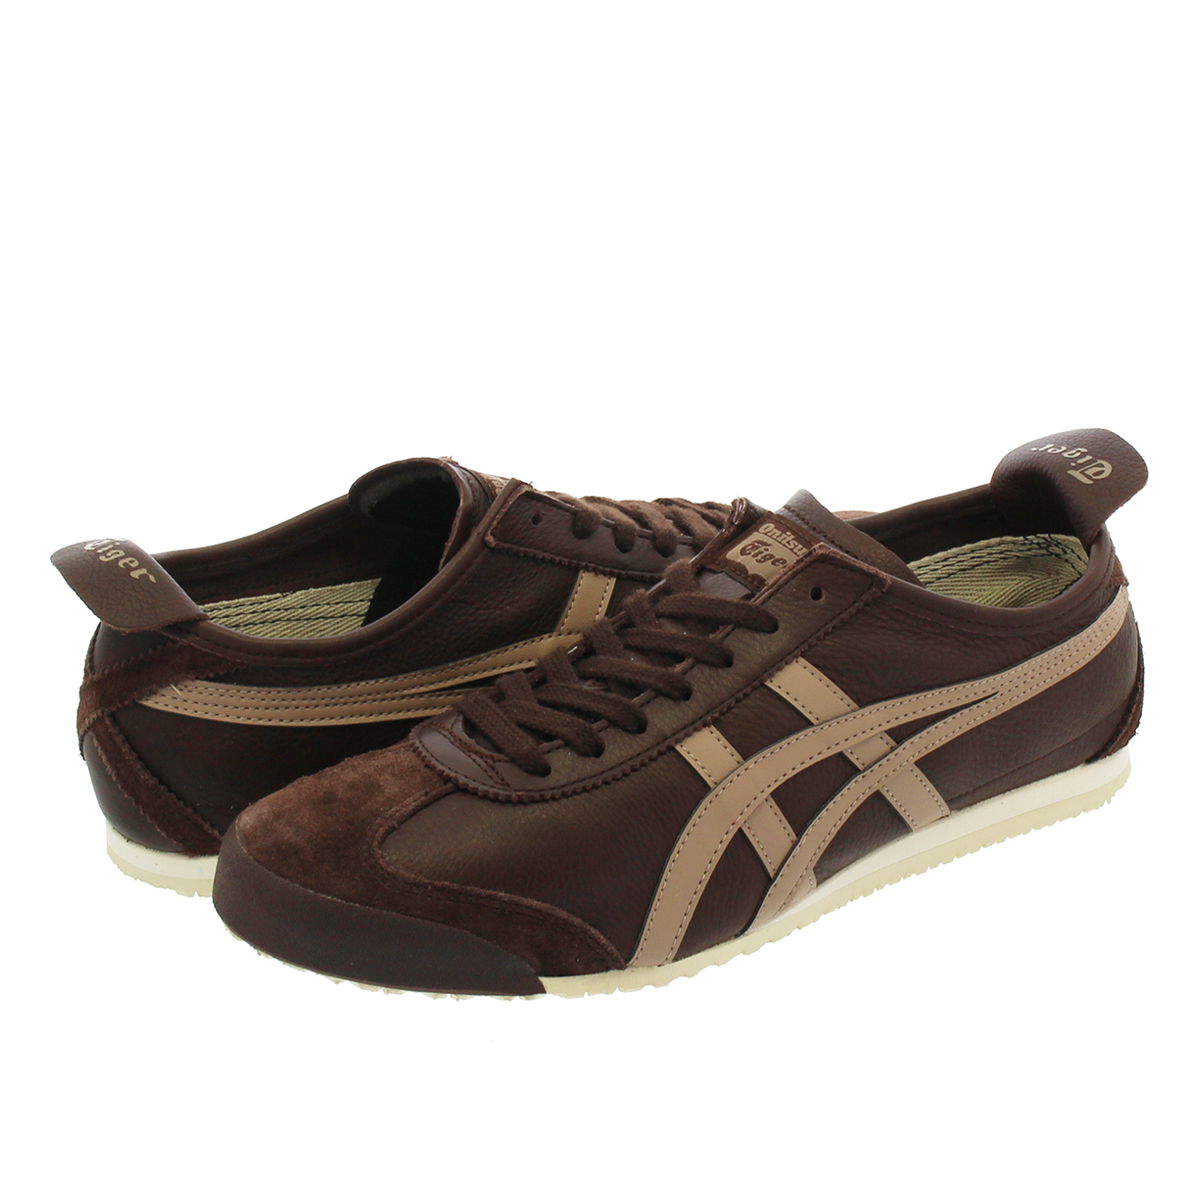 Onitsuka Tiger MEXICO 66 オニツカタイガー メキシコ 66 COFFEE/TAUPE GREY 1183a201-201